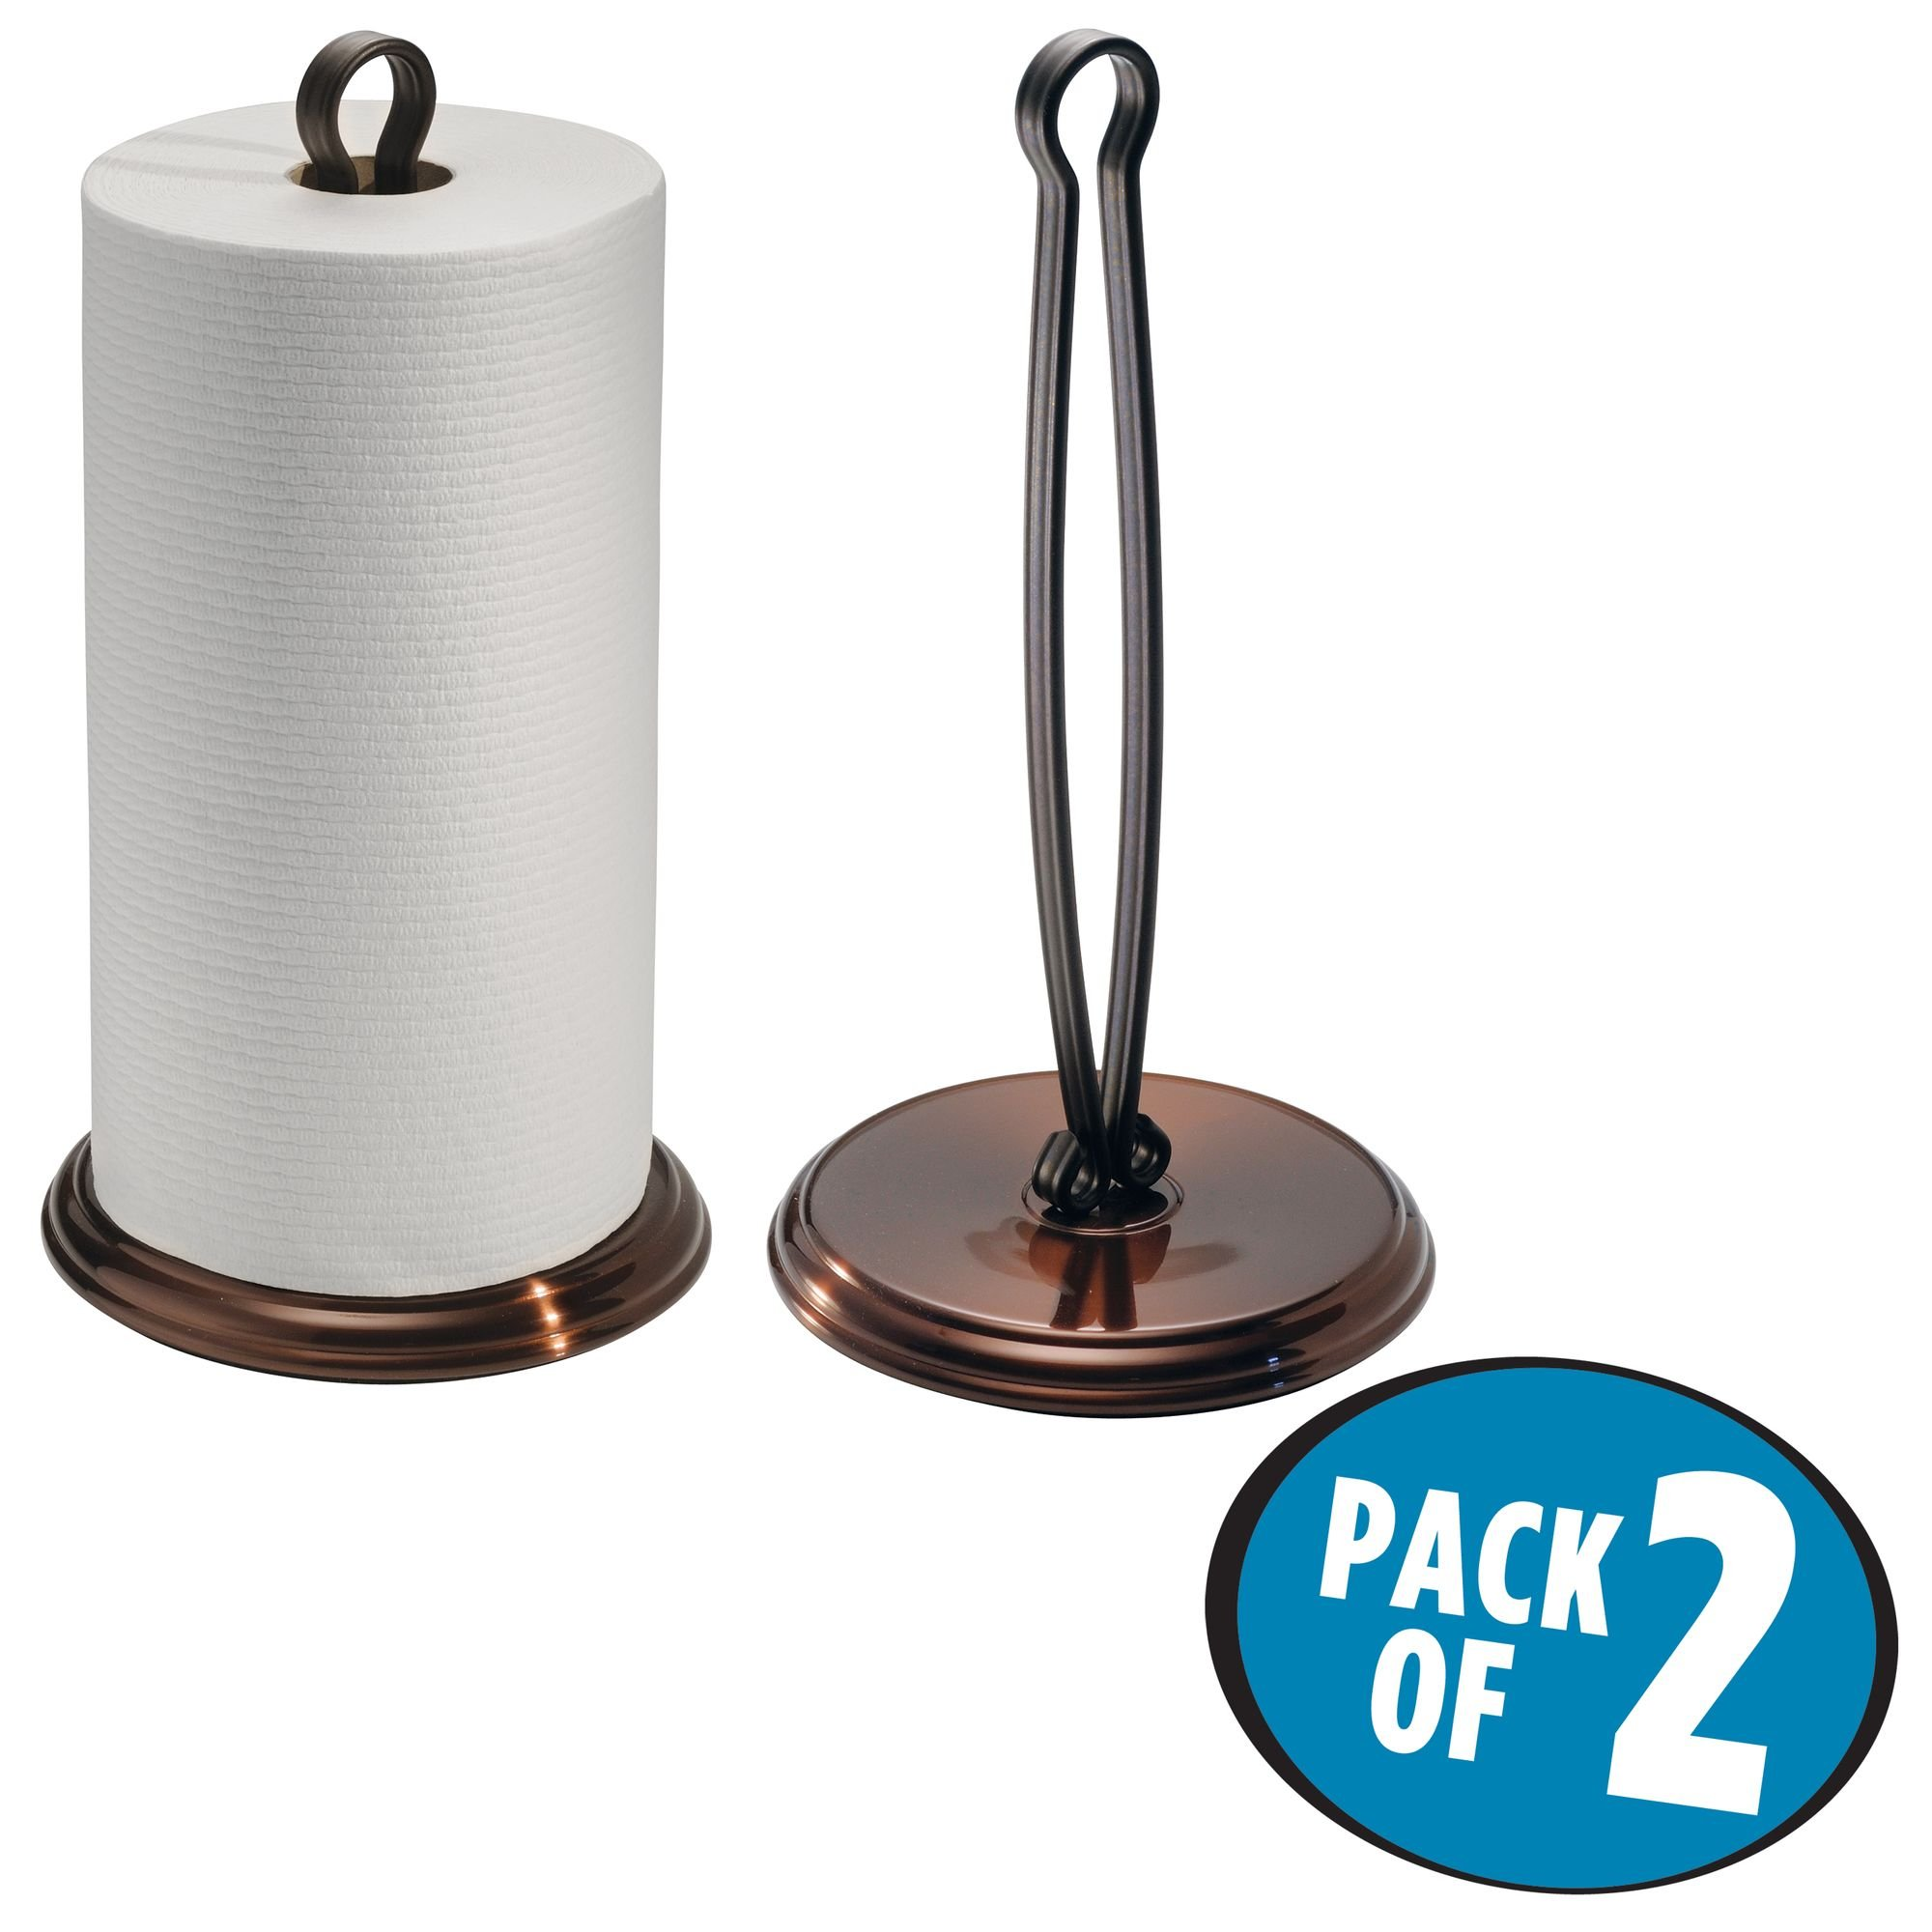 mDesign Paper Towel Holder Stand/Dispenser, Freestanding Vertical Design, Fits Standard and Jumbo-Sized Rolls - for Kitchen Countertop, Pantry, Laundry/Utility Room, Garage Storage - Pack of 2, Bronze